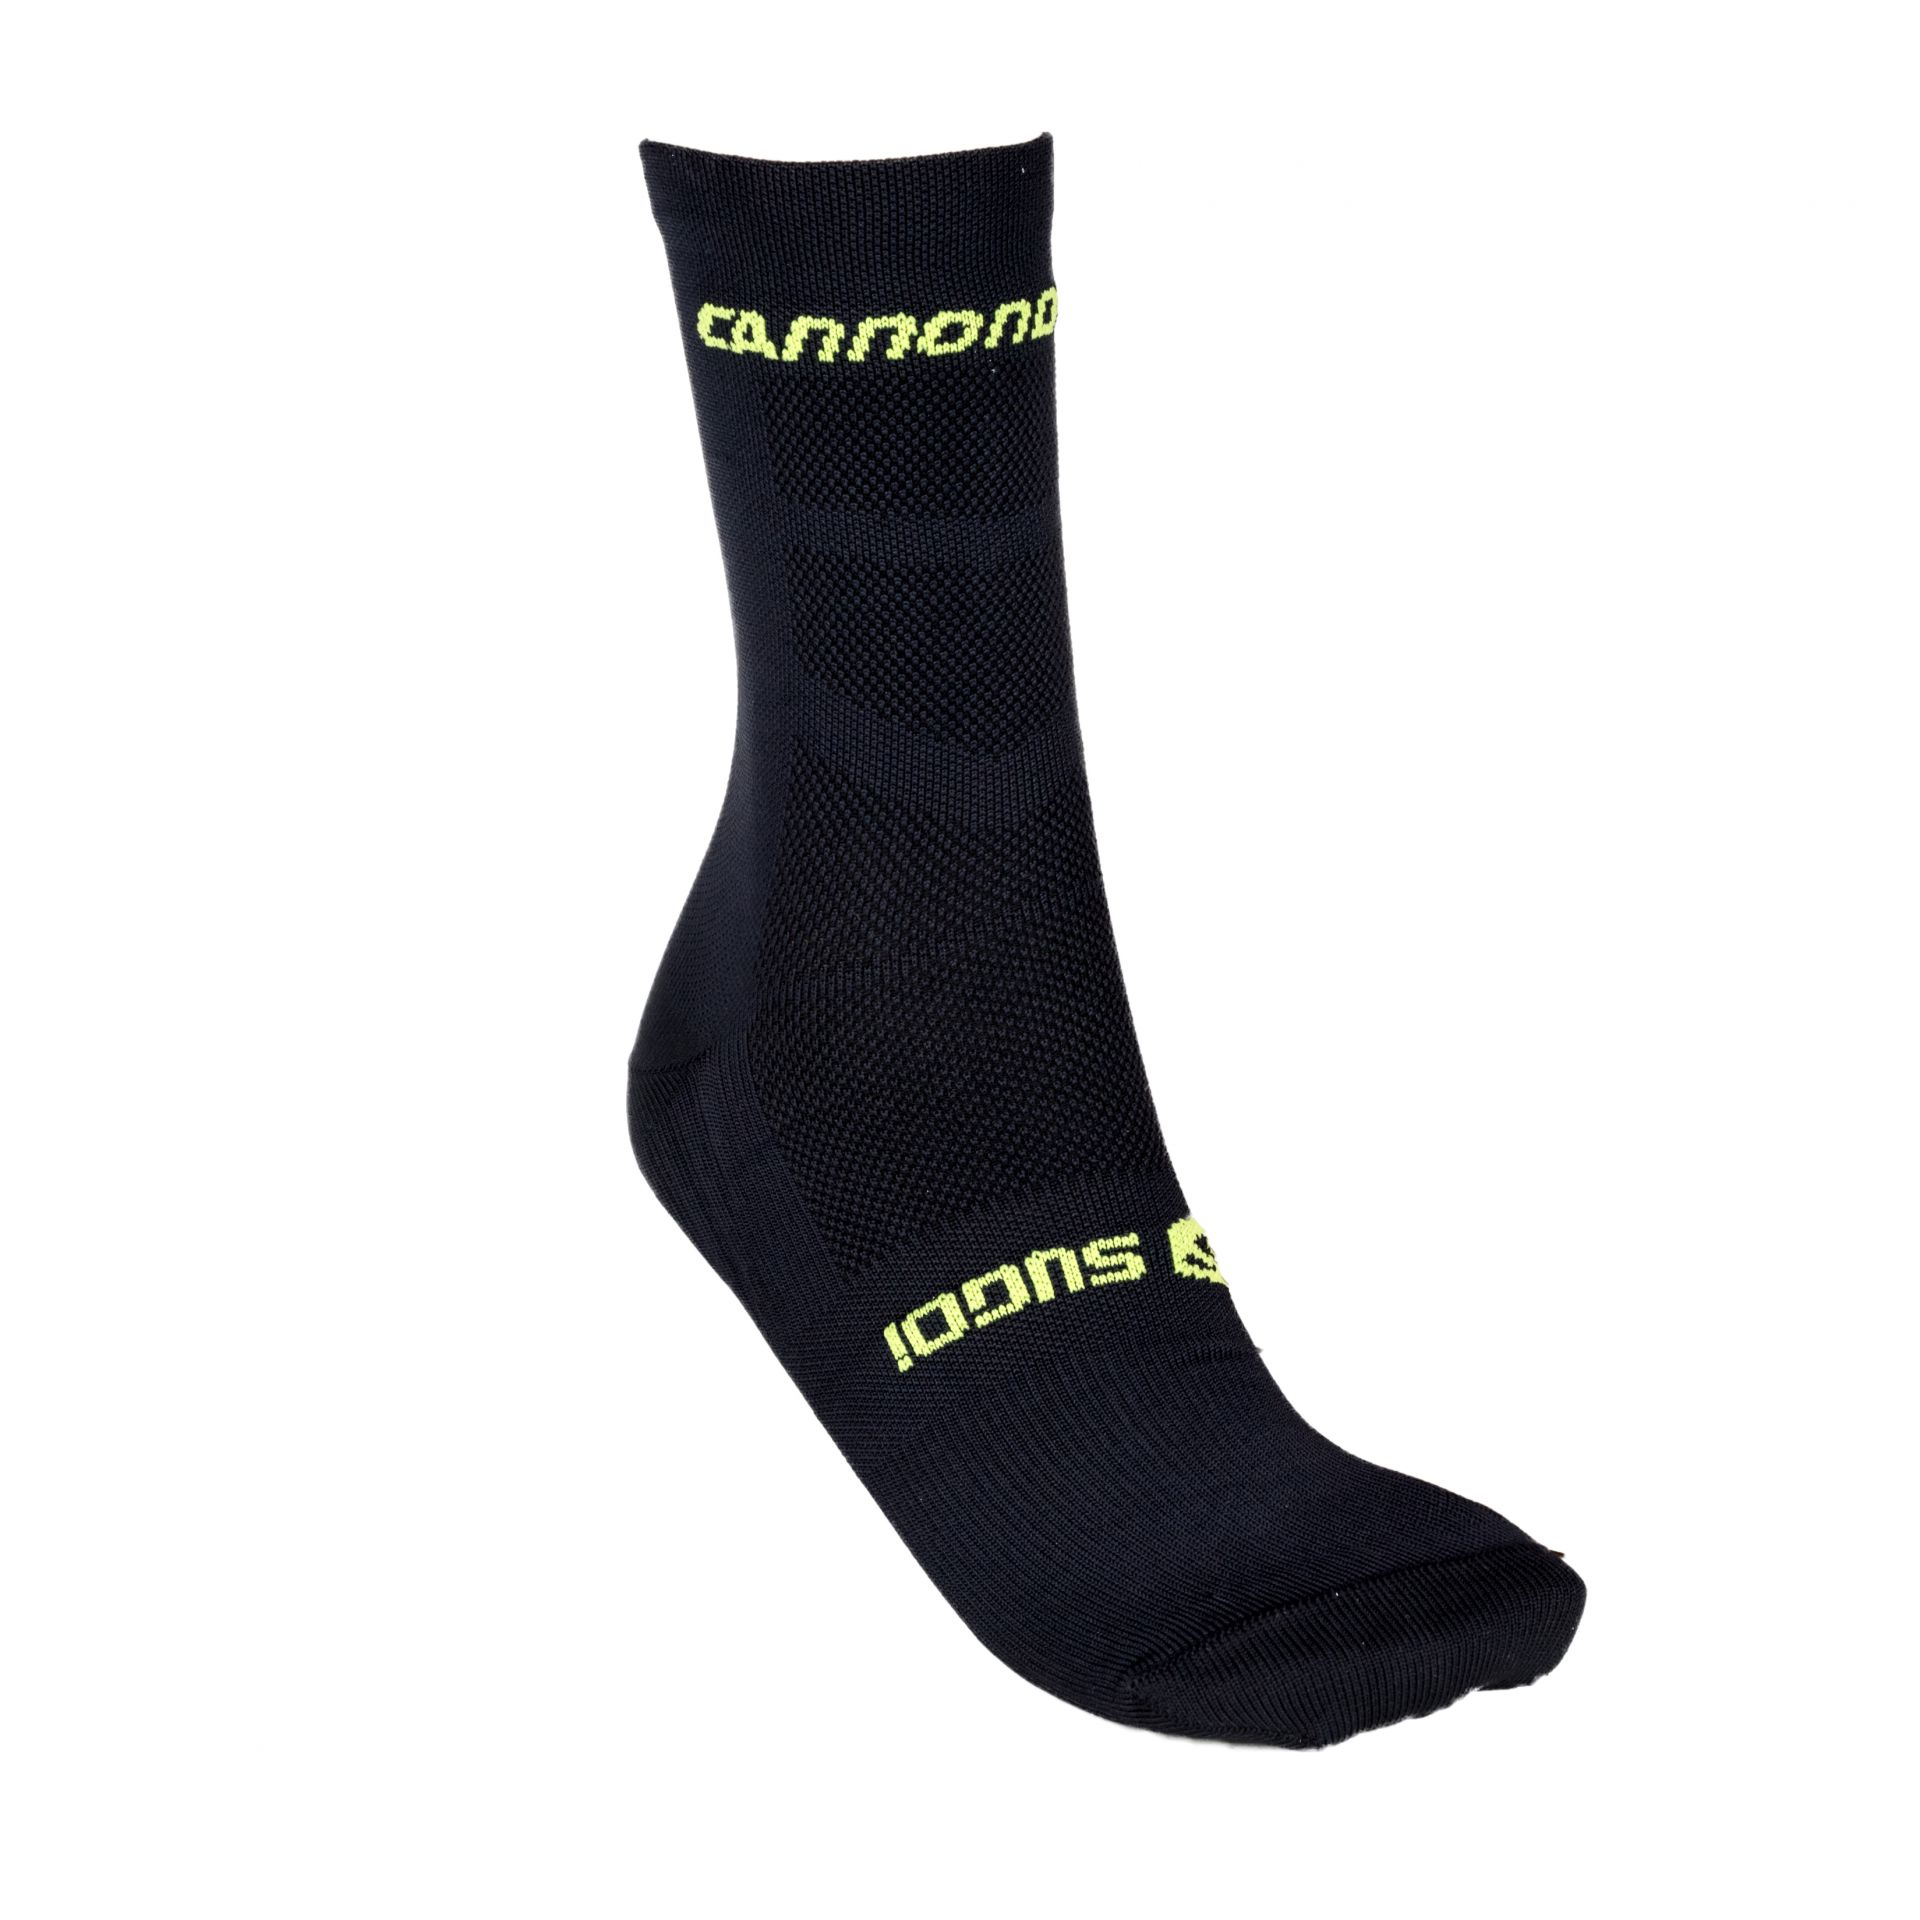 Chaussettes Cannondale RS Crew CFR by Sugoi Vert - S 38-40